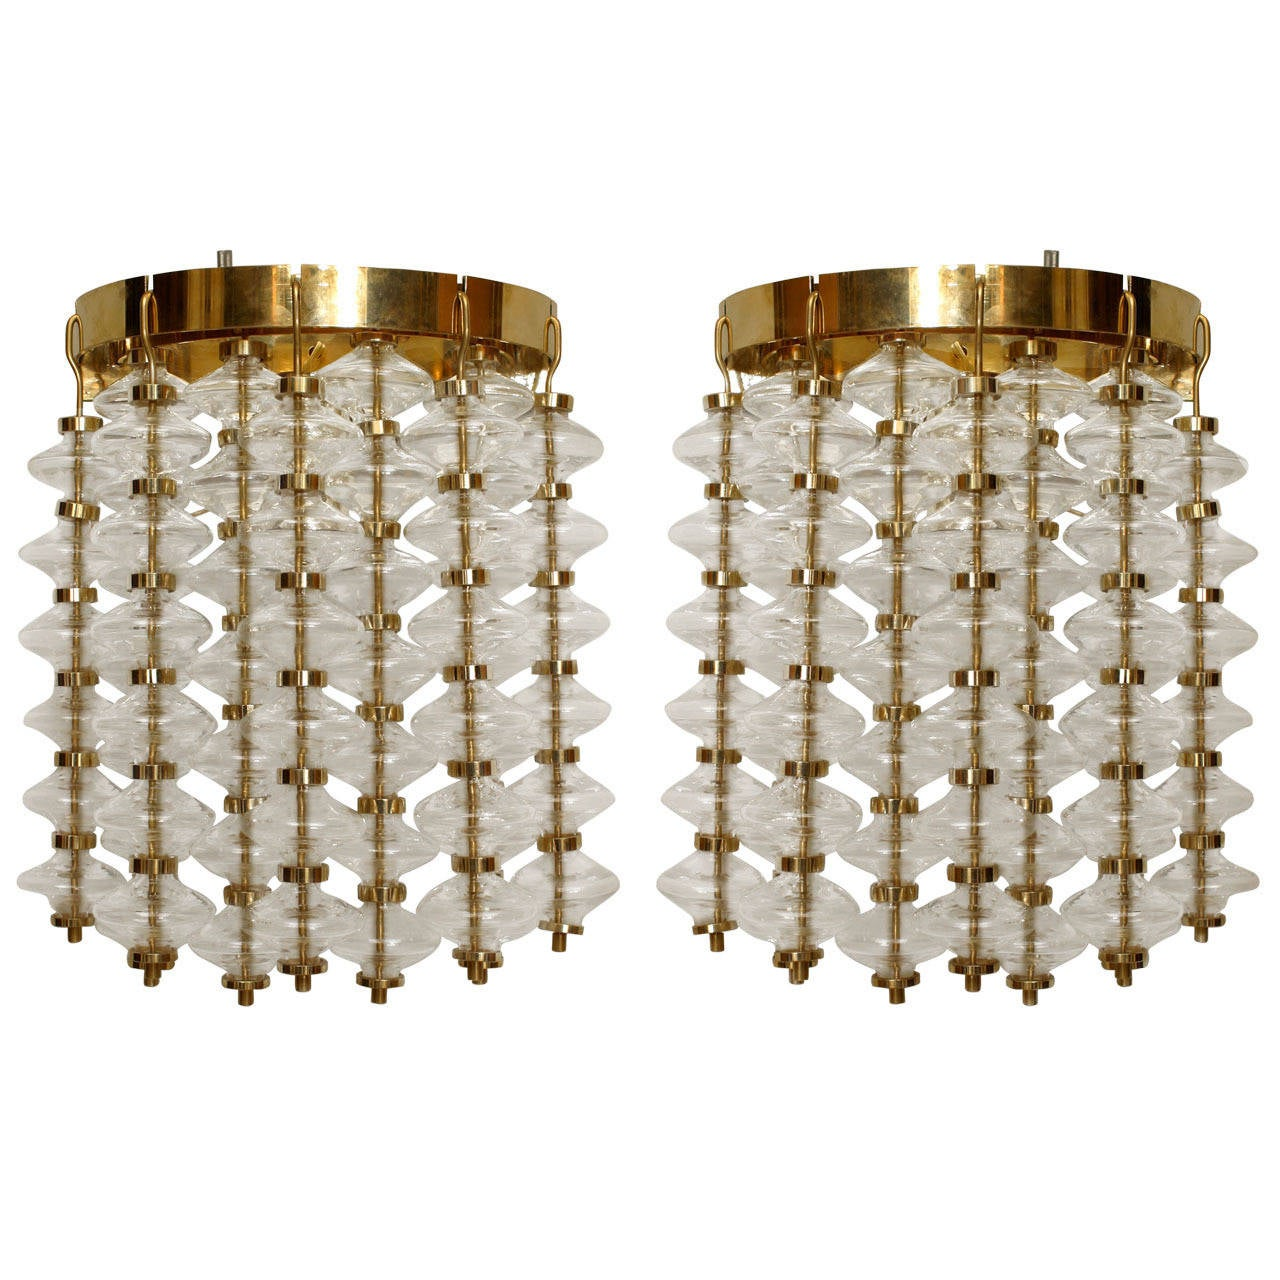 Pair of Italian Bubble Glass Wall Sconces